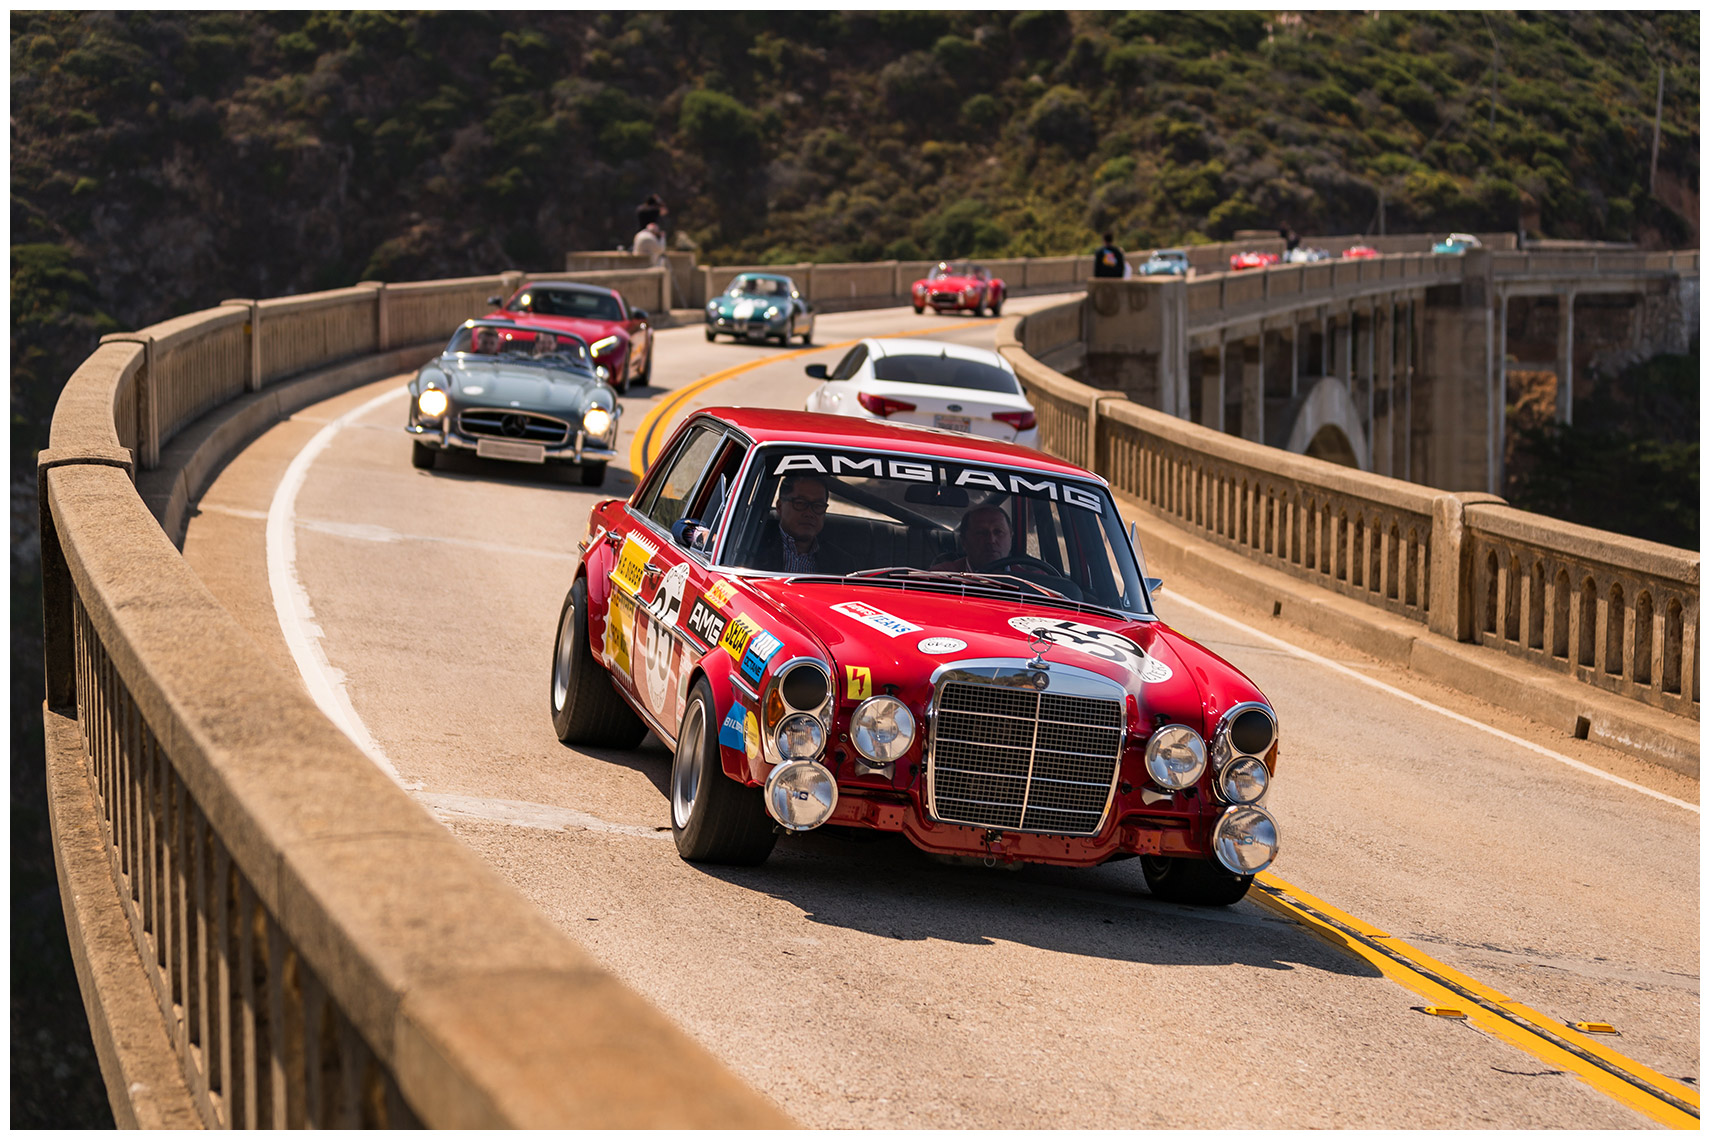 jochen mass drives the amg 300 sel 6.8 red pig across the bixby bridge in the 2017 tour d